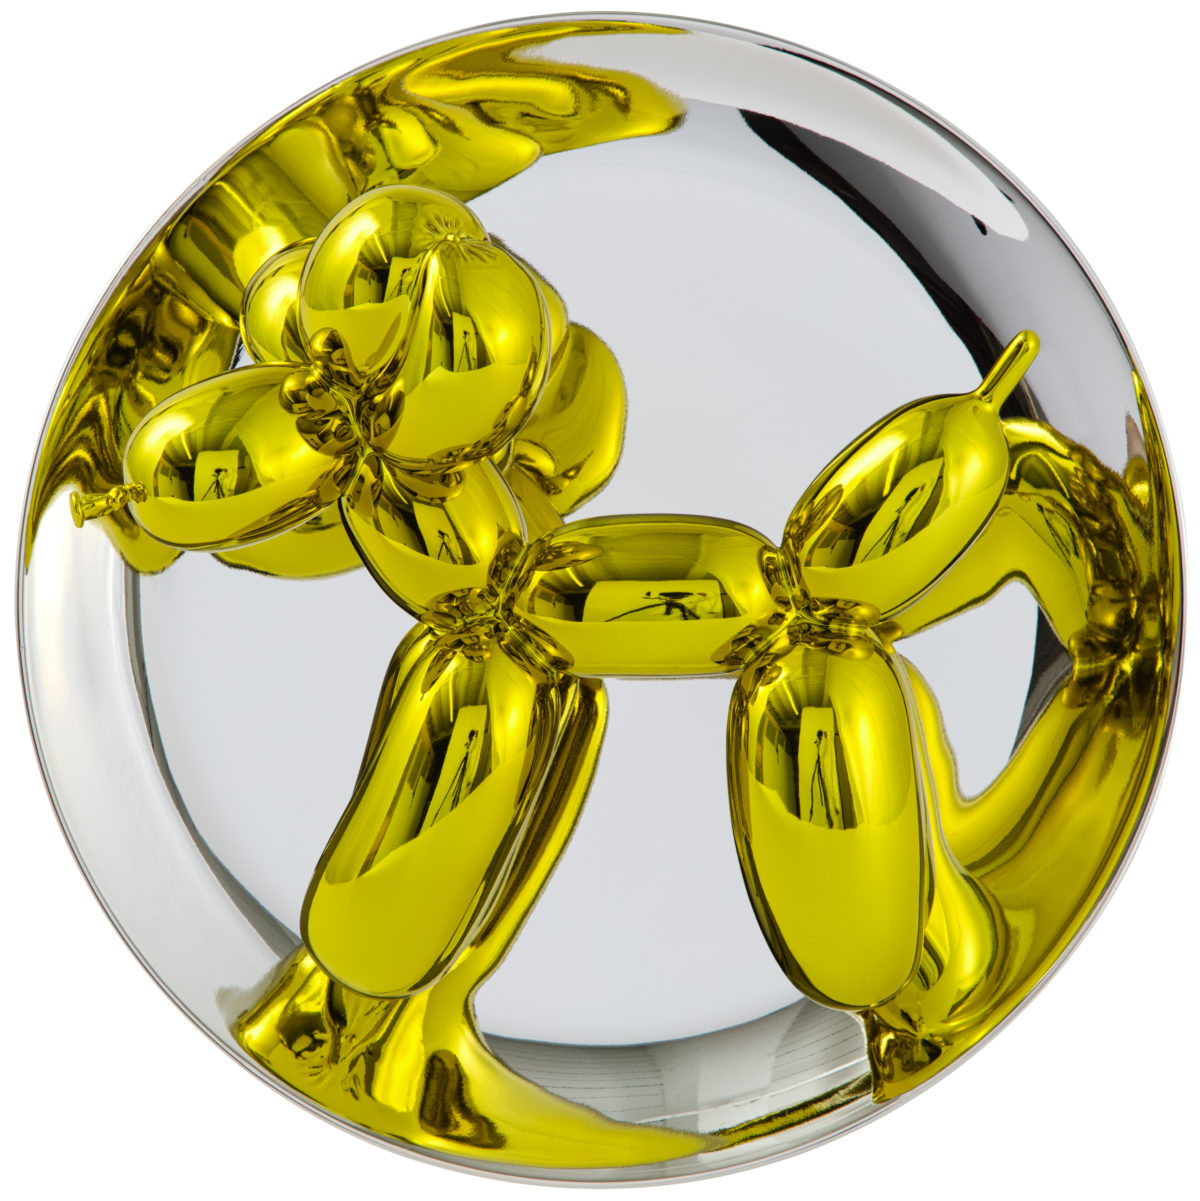 KOONS_Balloon dogs plate jaune copyright © Jeff Koons